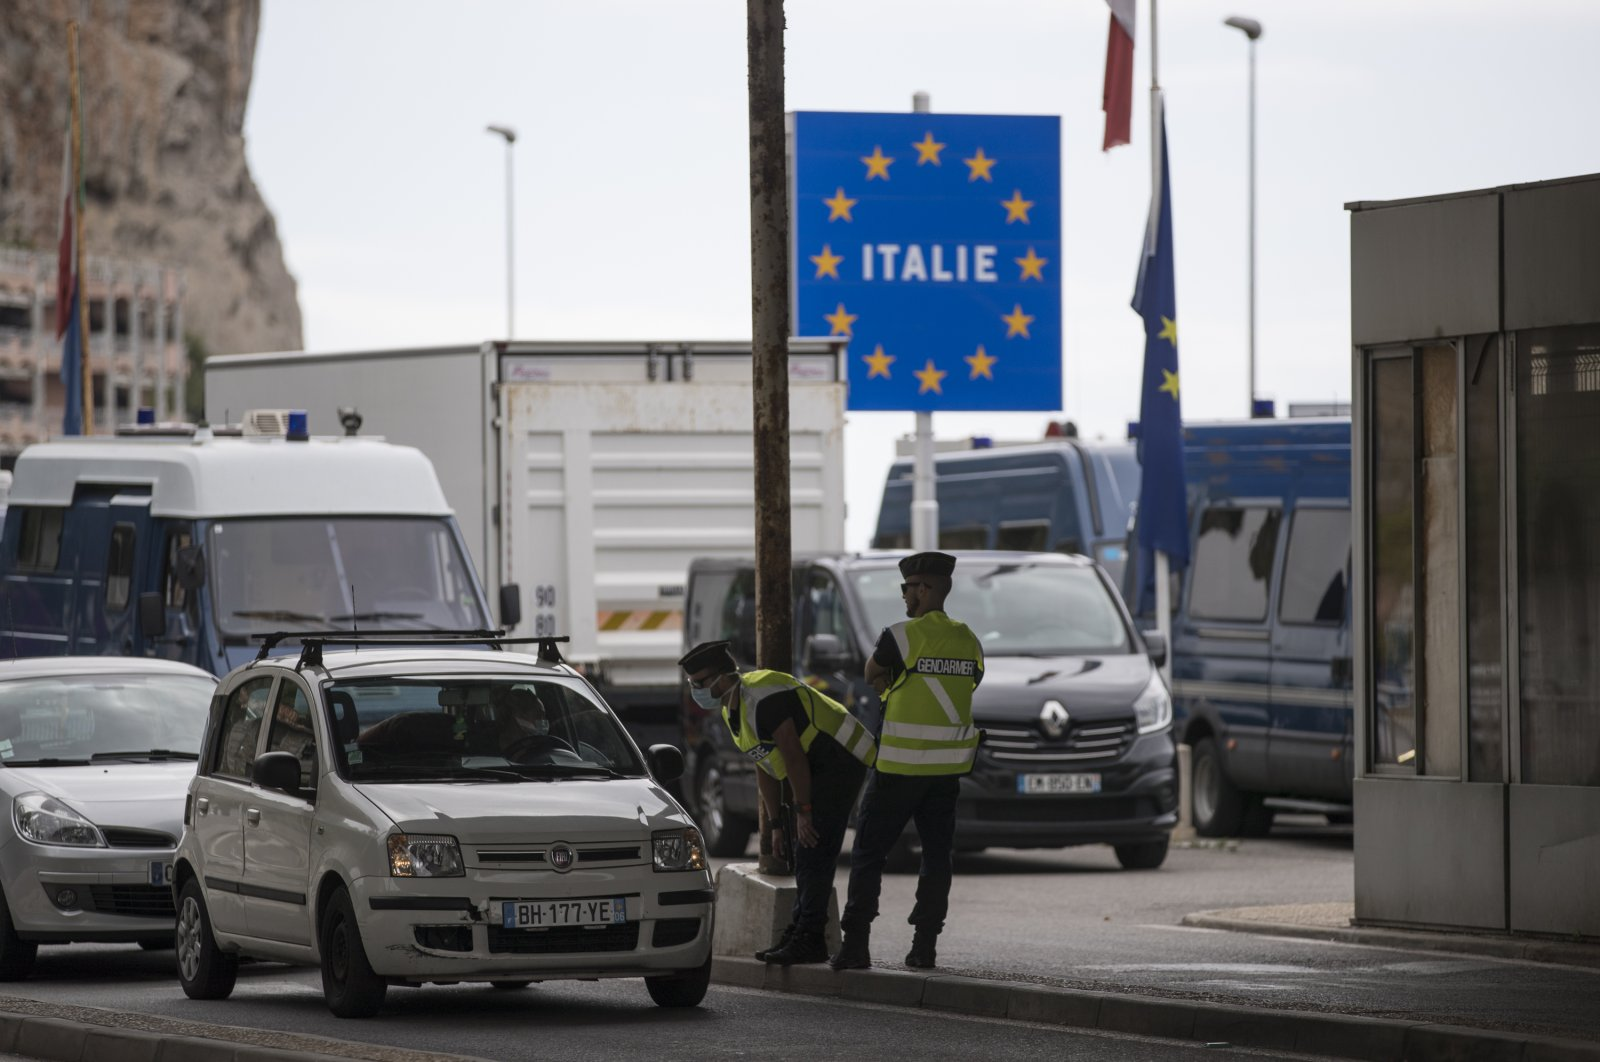 In this Monday, June 15, 2020 file photo, French gendarmes approach a car at the Saint-Ludovic border check point on the Franco-Italian border in Menton, France. (AP Photo)